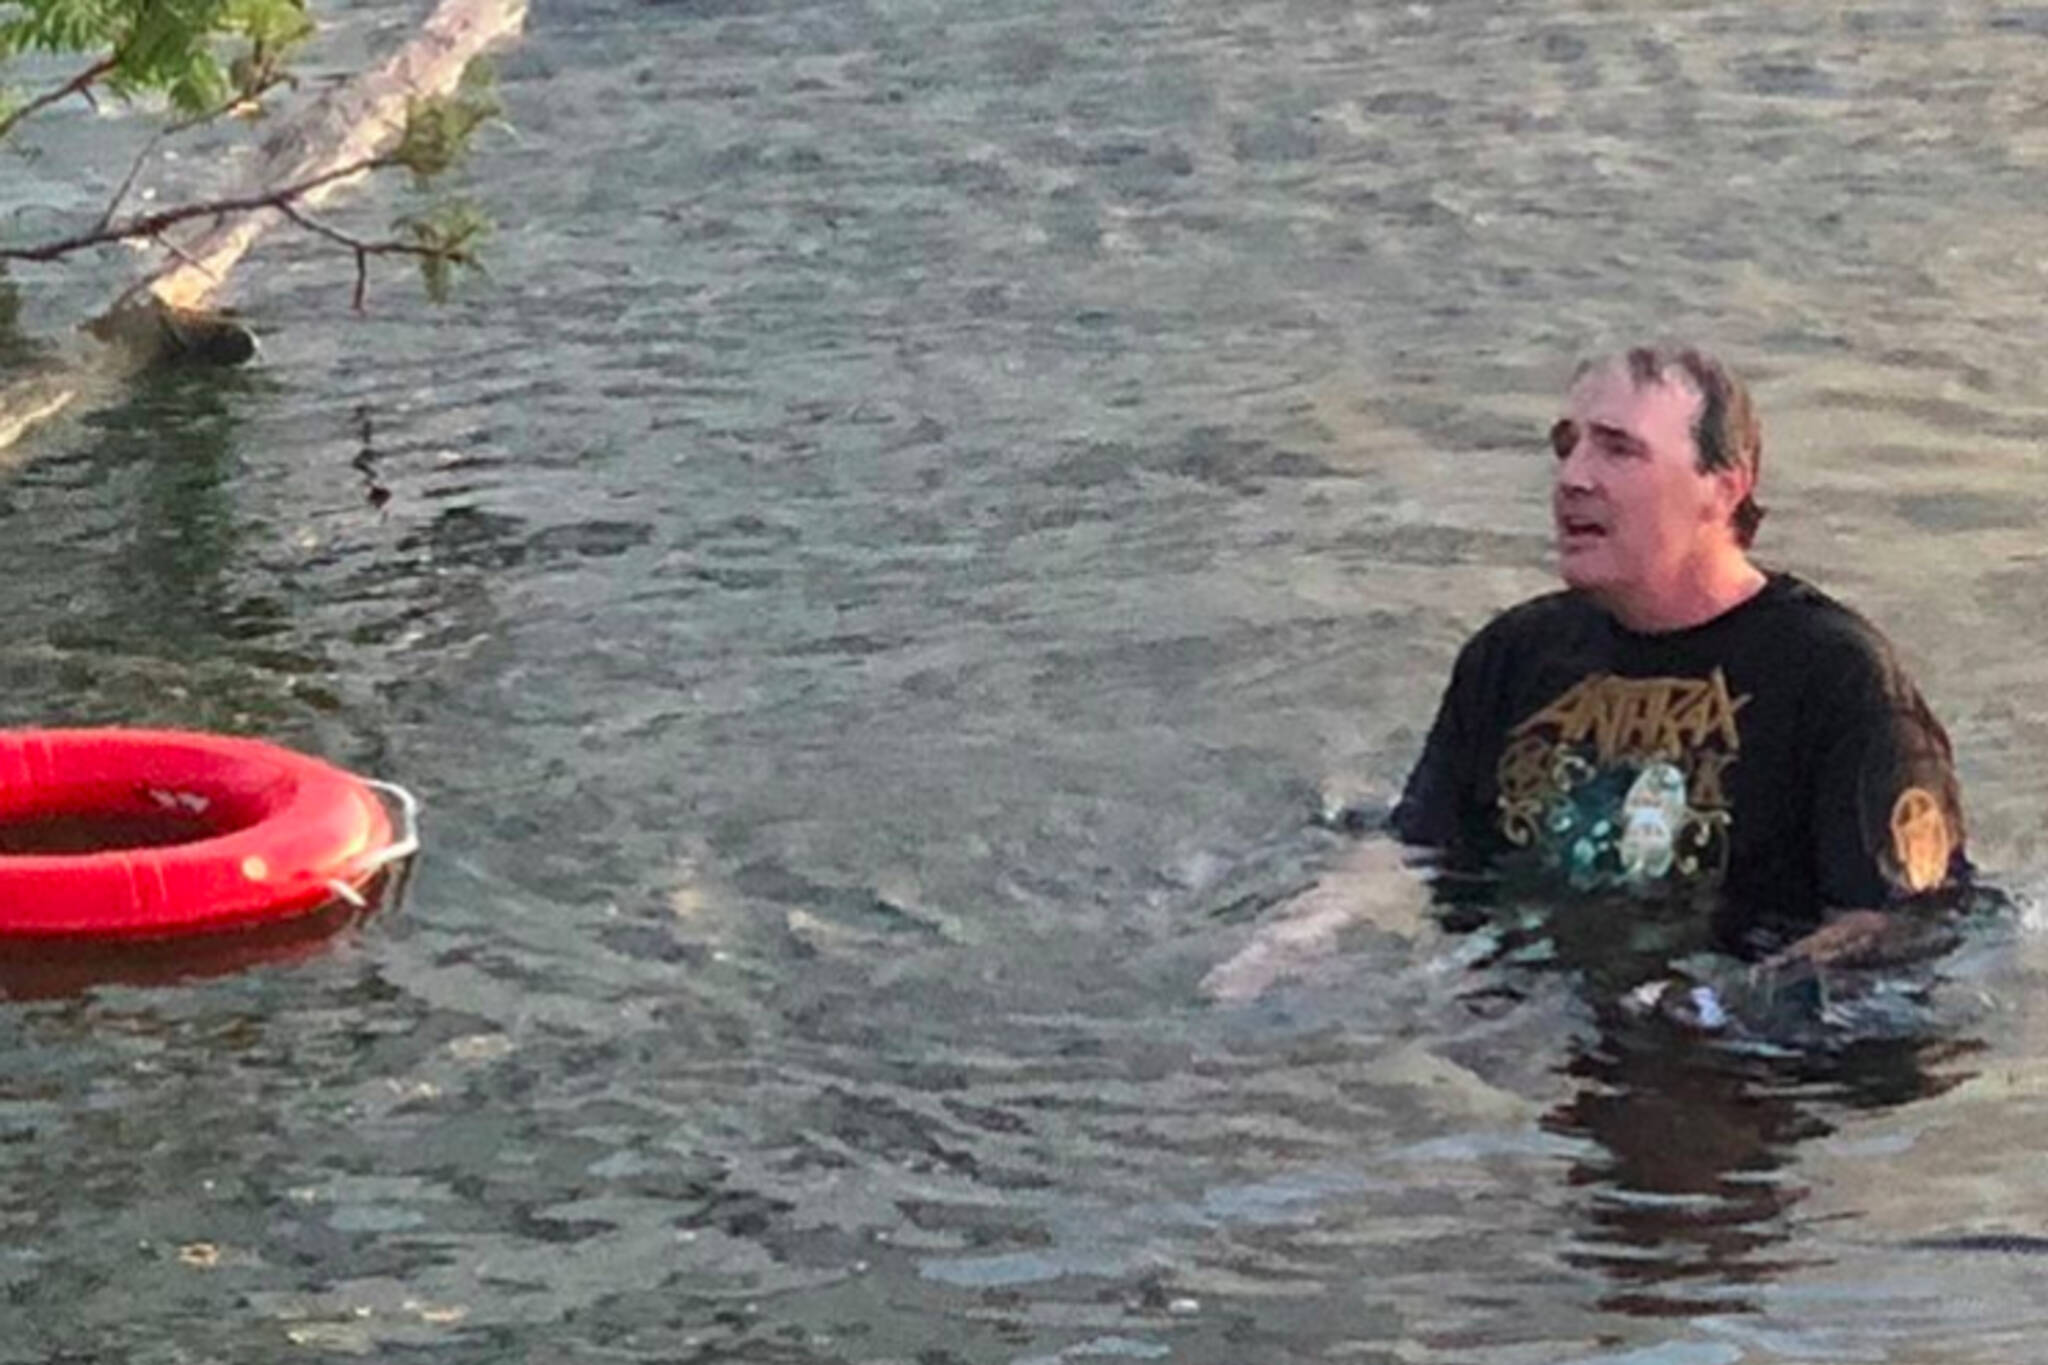 Slayer fan swims